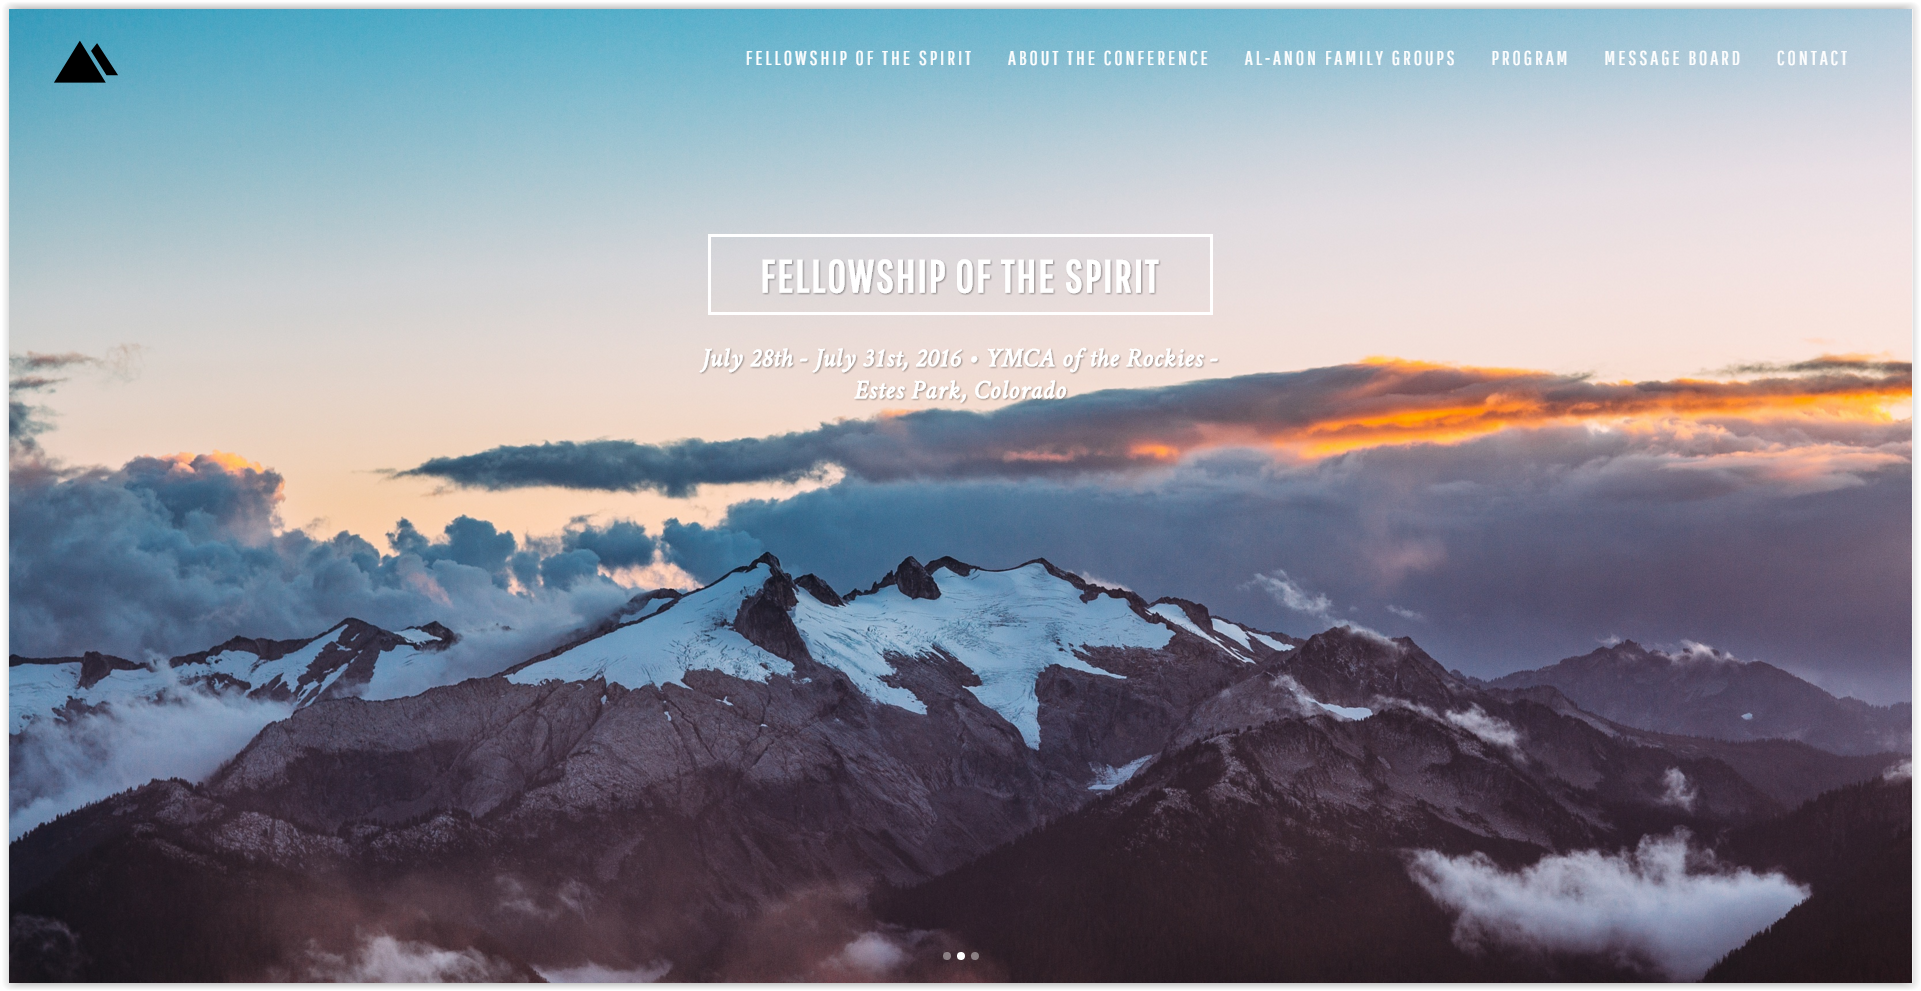 Colorado Fellowship of the Spirit